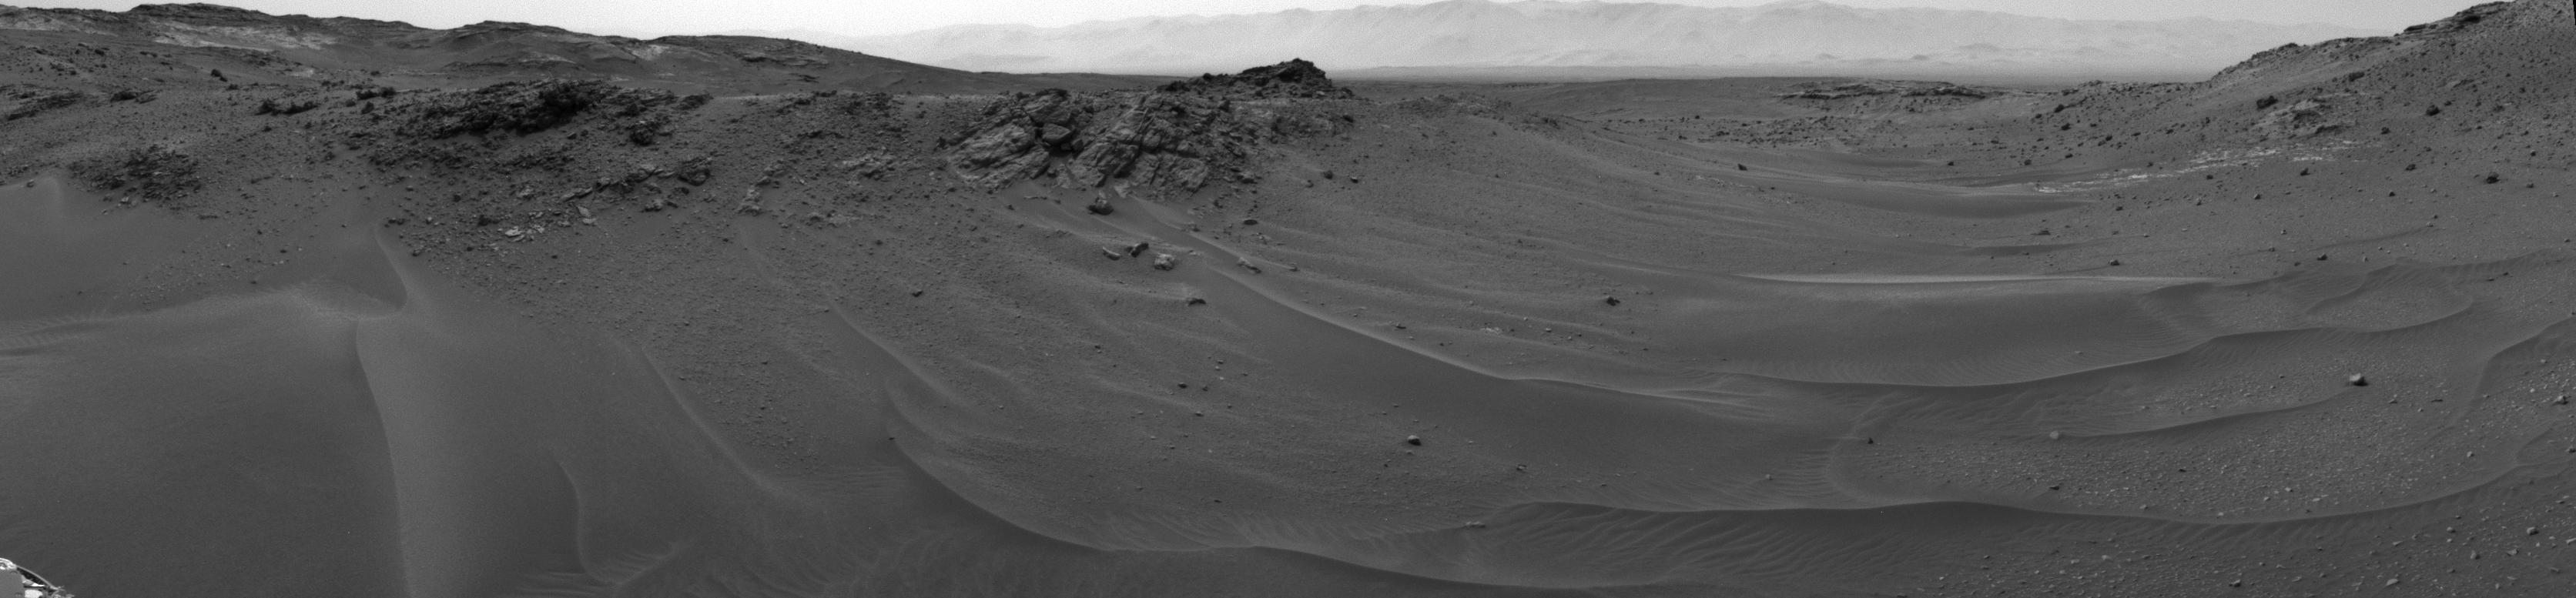 Curiosity Rover's View at 10 Kilometers of Driving Distance